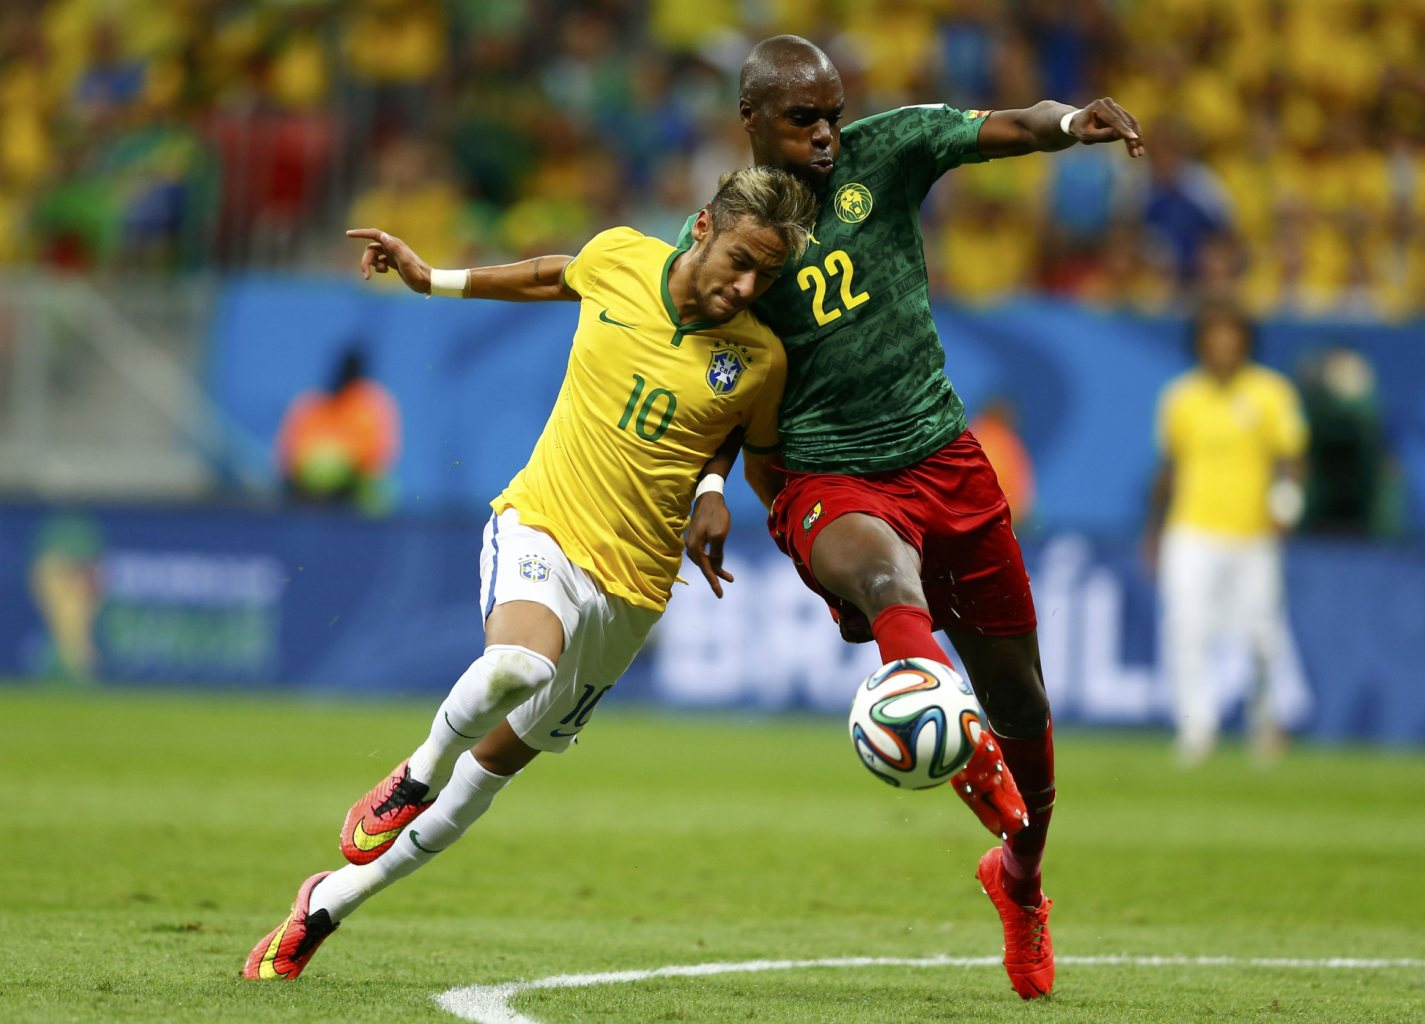 Neymar body strength and balance in Brazil's FIFA World Cup 2014